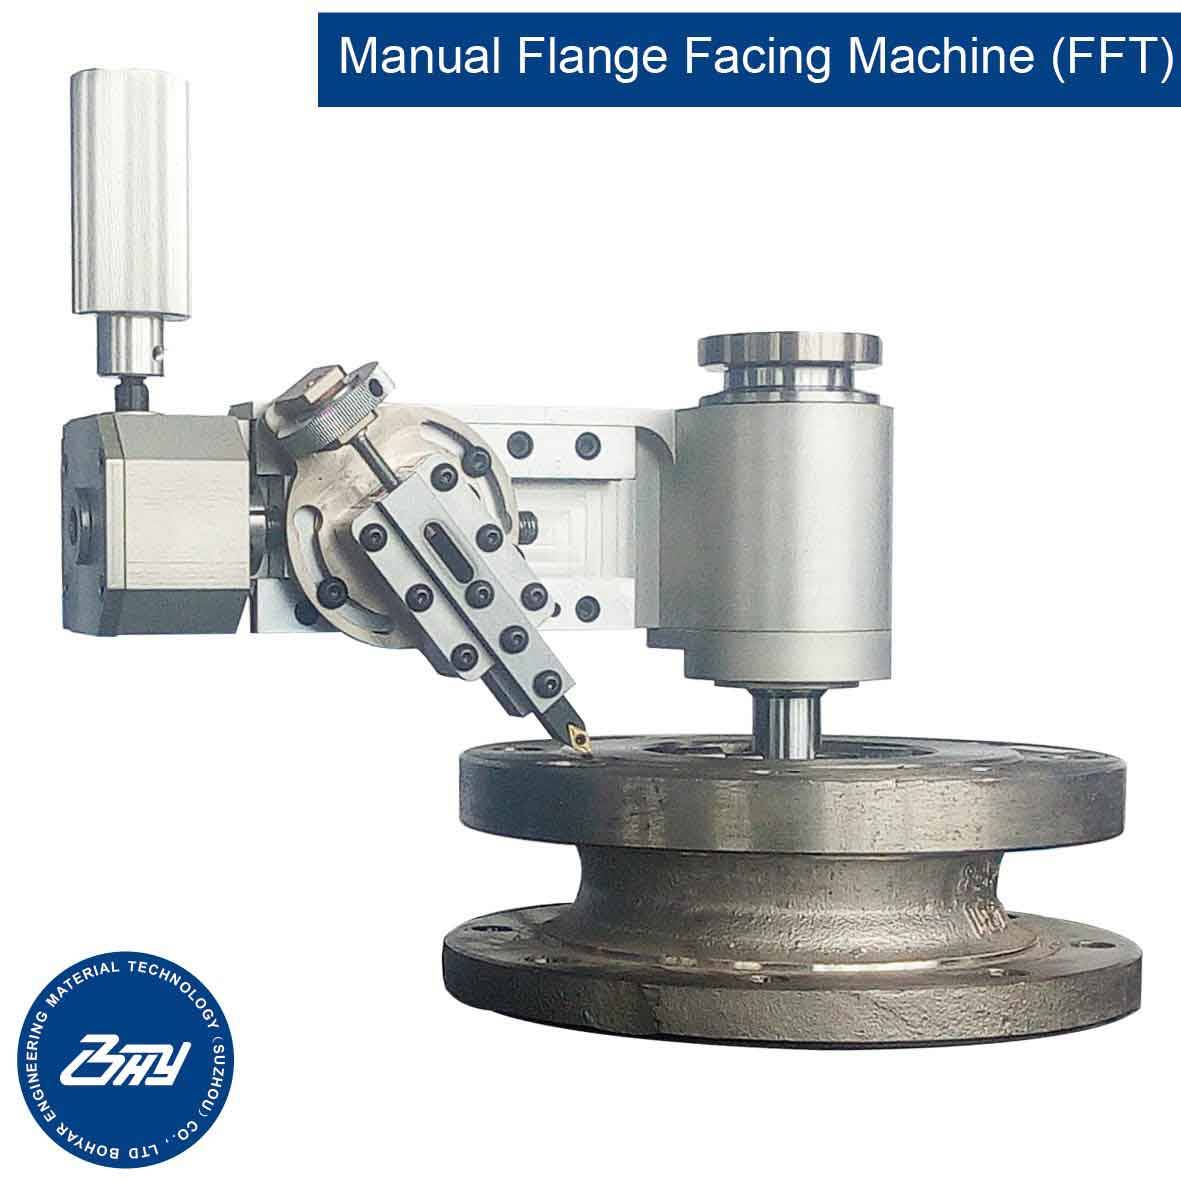 Manual-Flange-Facing-Machine-FFT-Series-